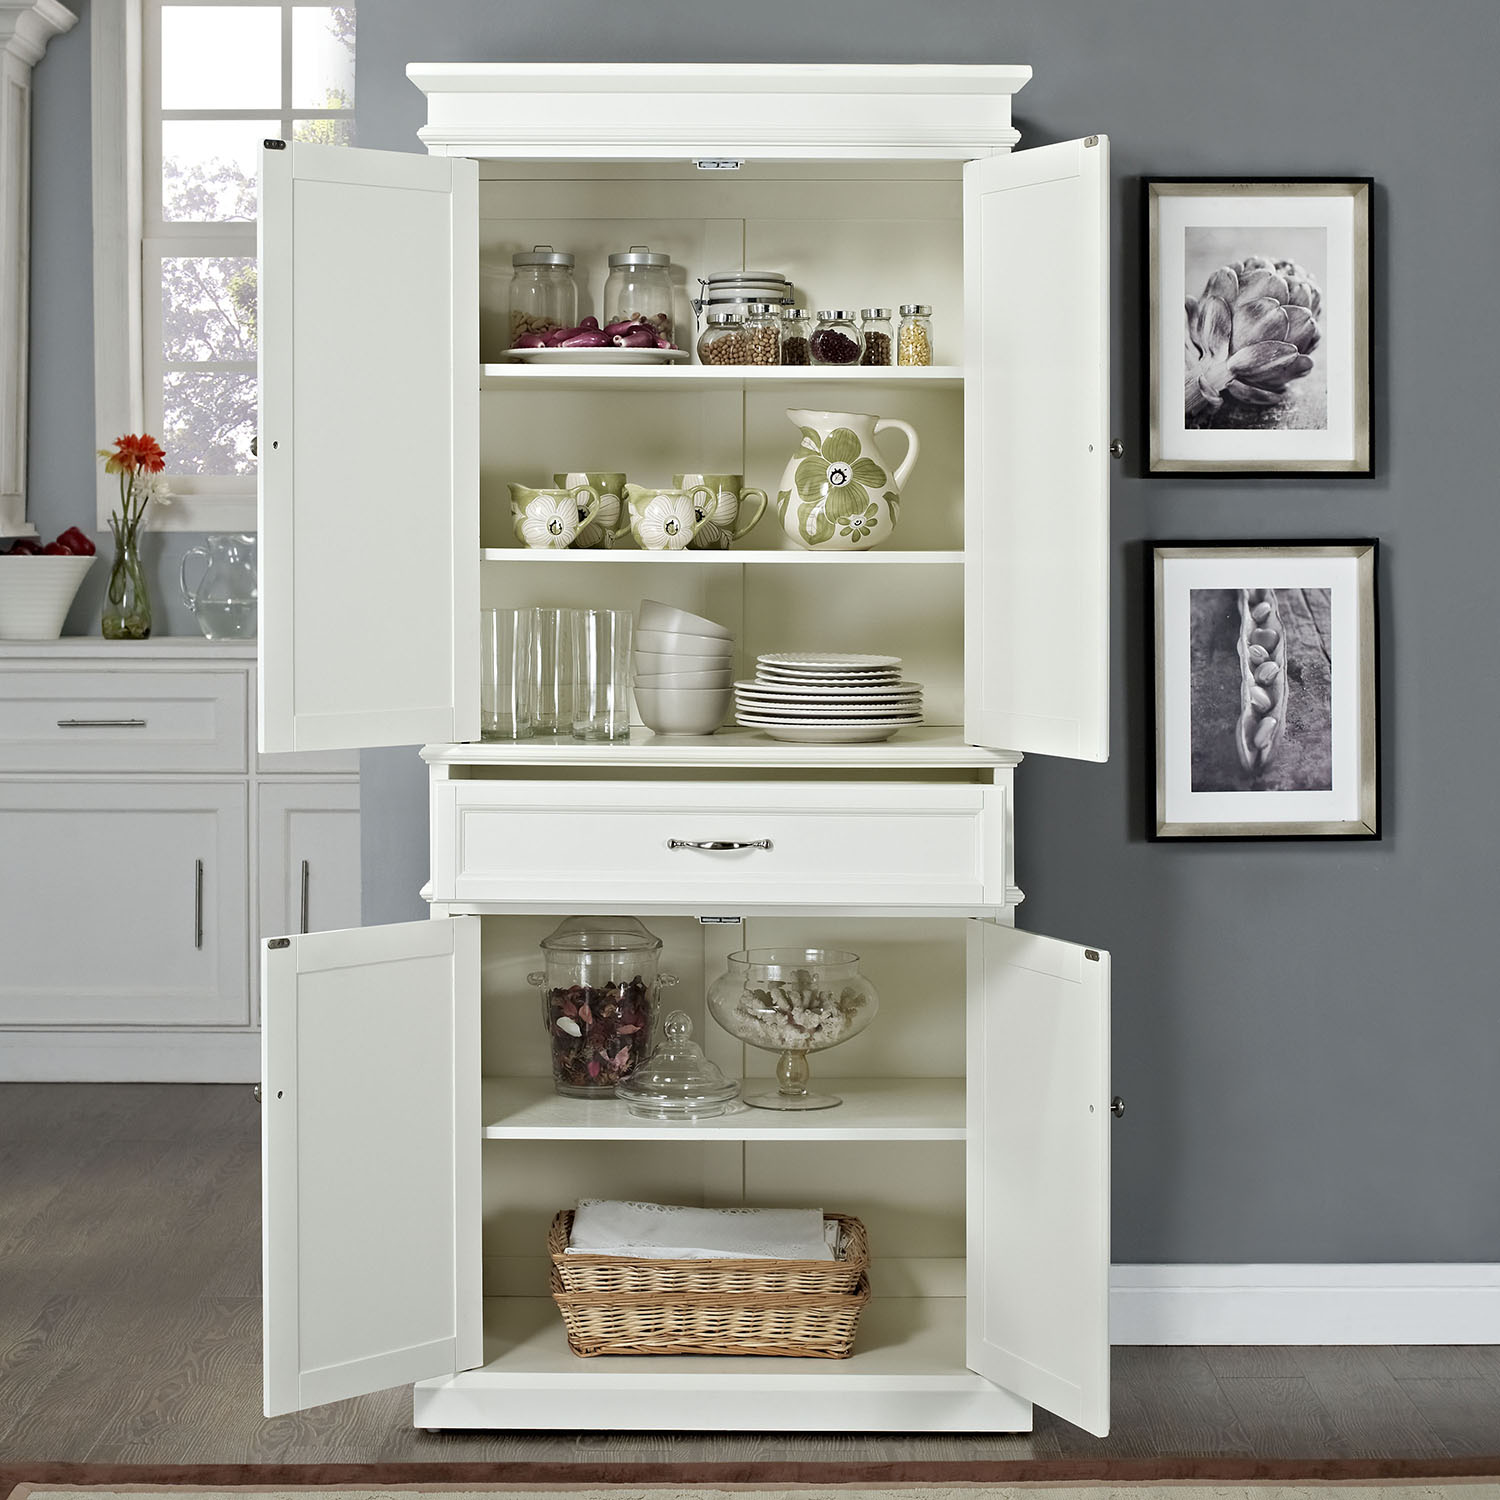 Parsons Pantry - Adjustable Shelves, White | DCG Stores